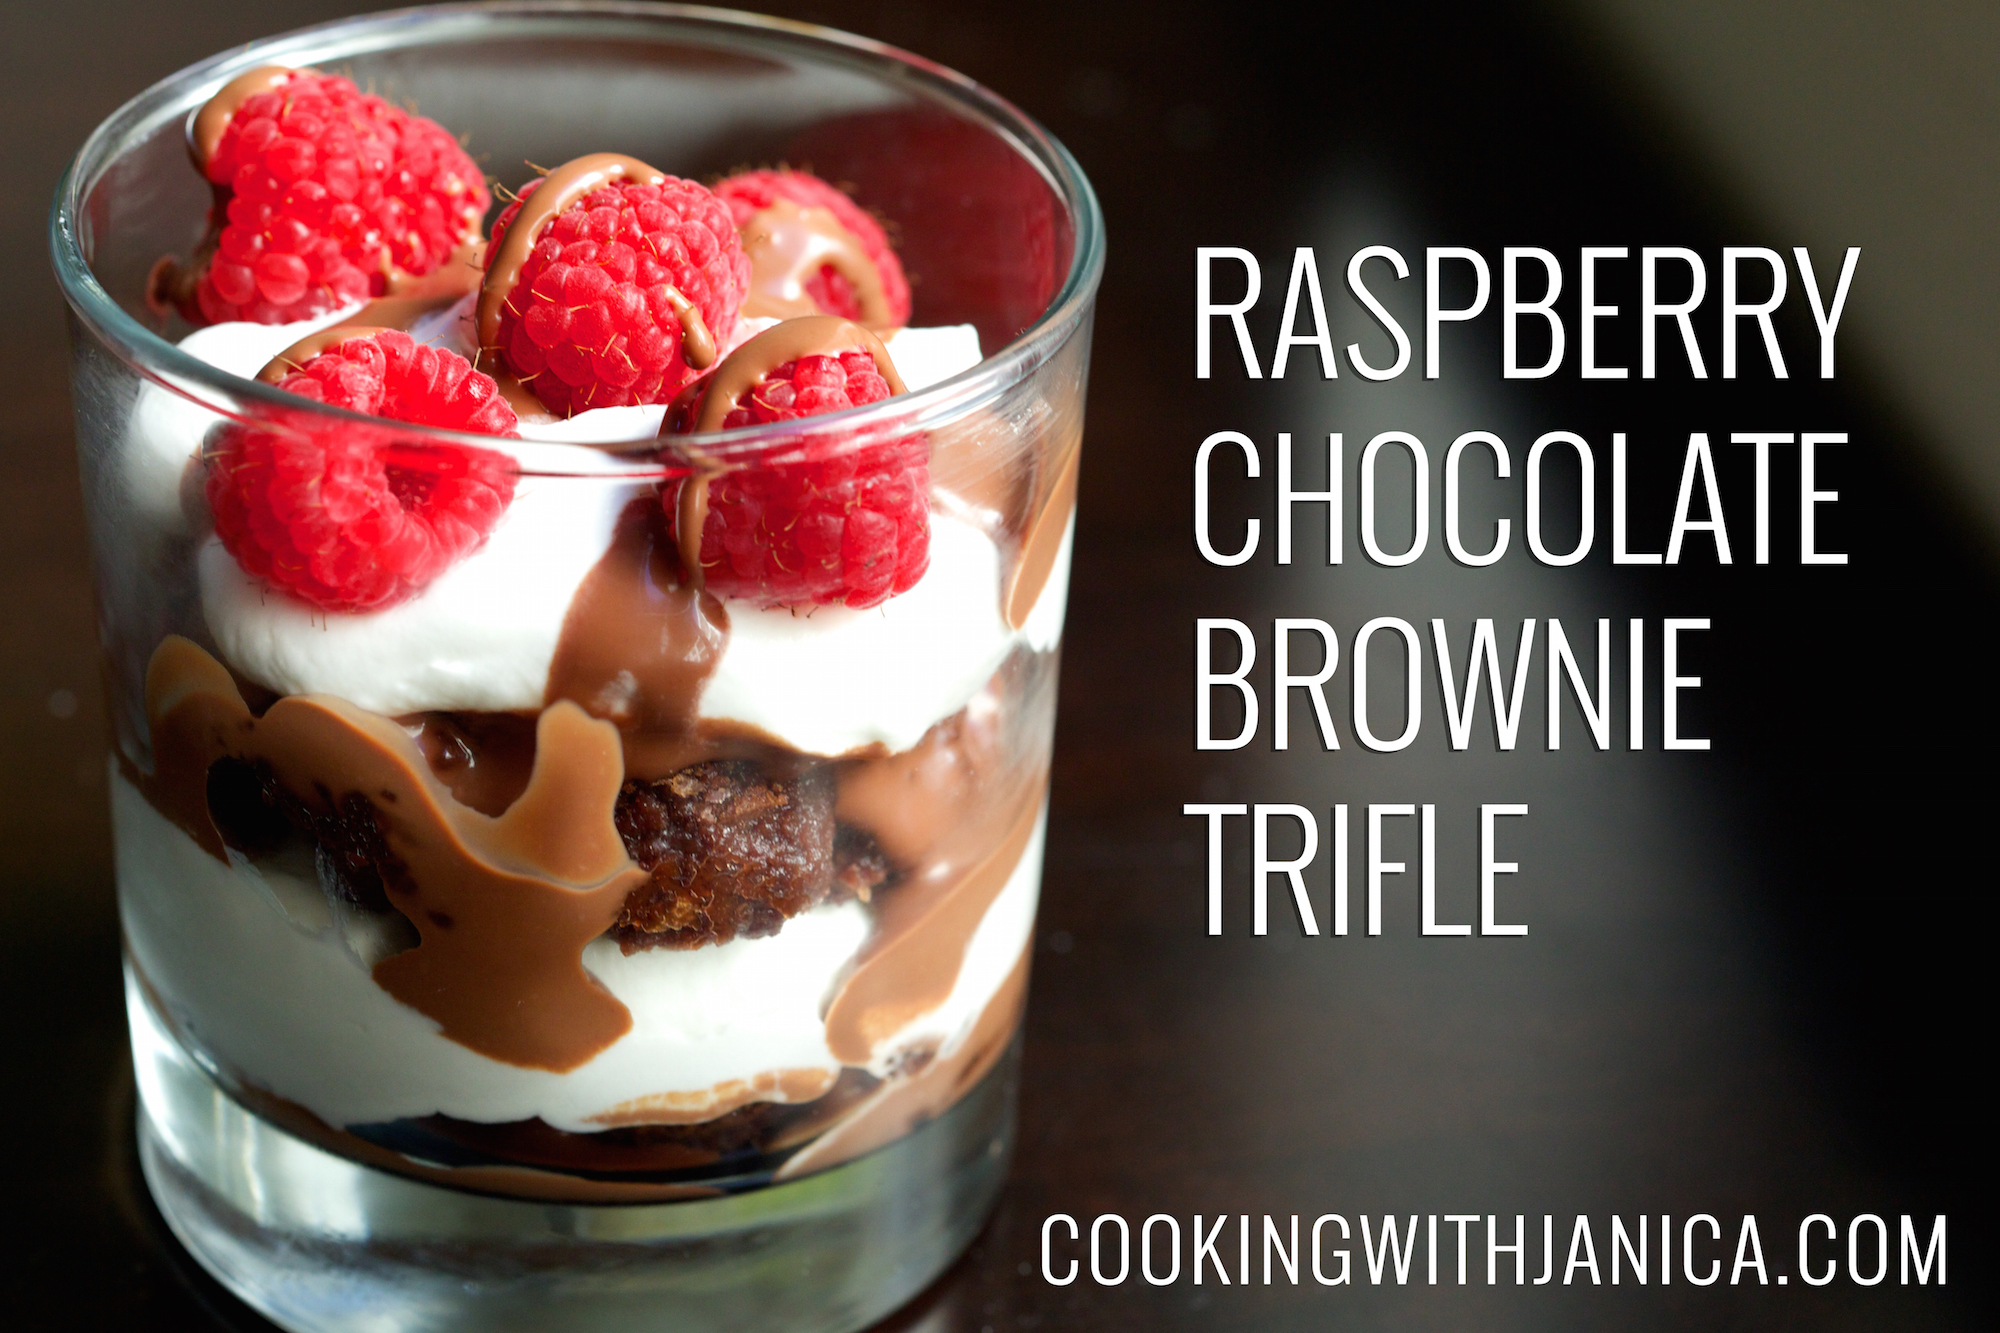 Raspberry Chocolate Brownie Trifle Recipe